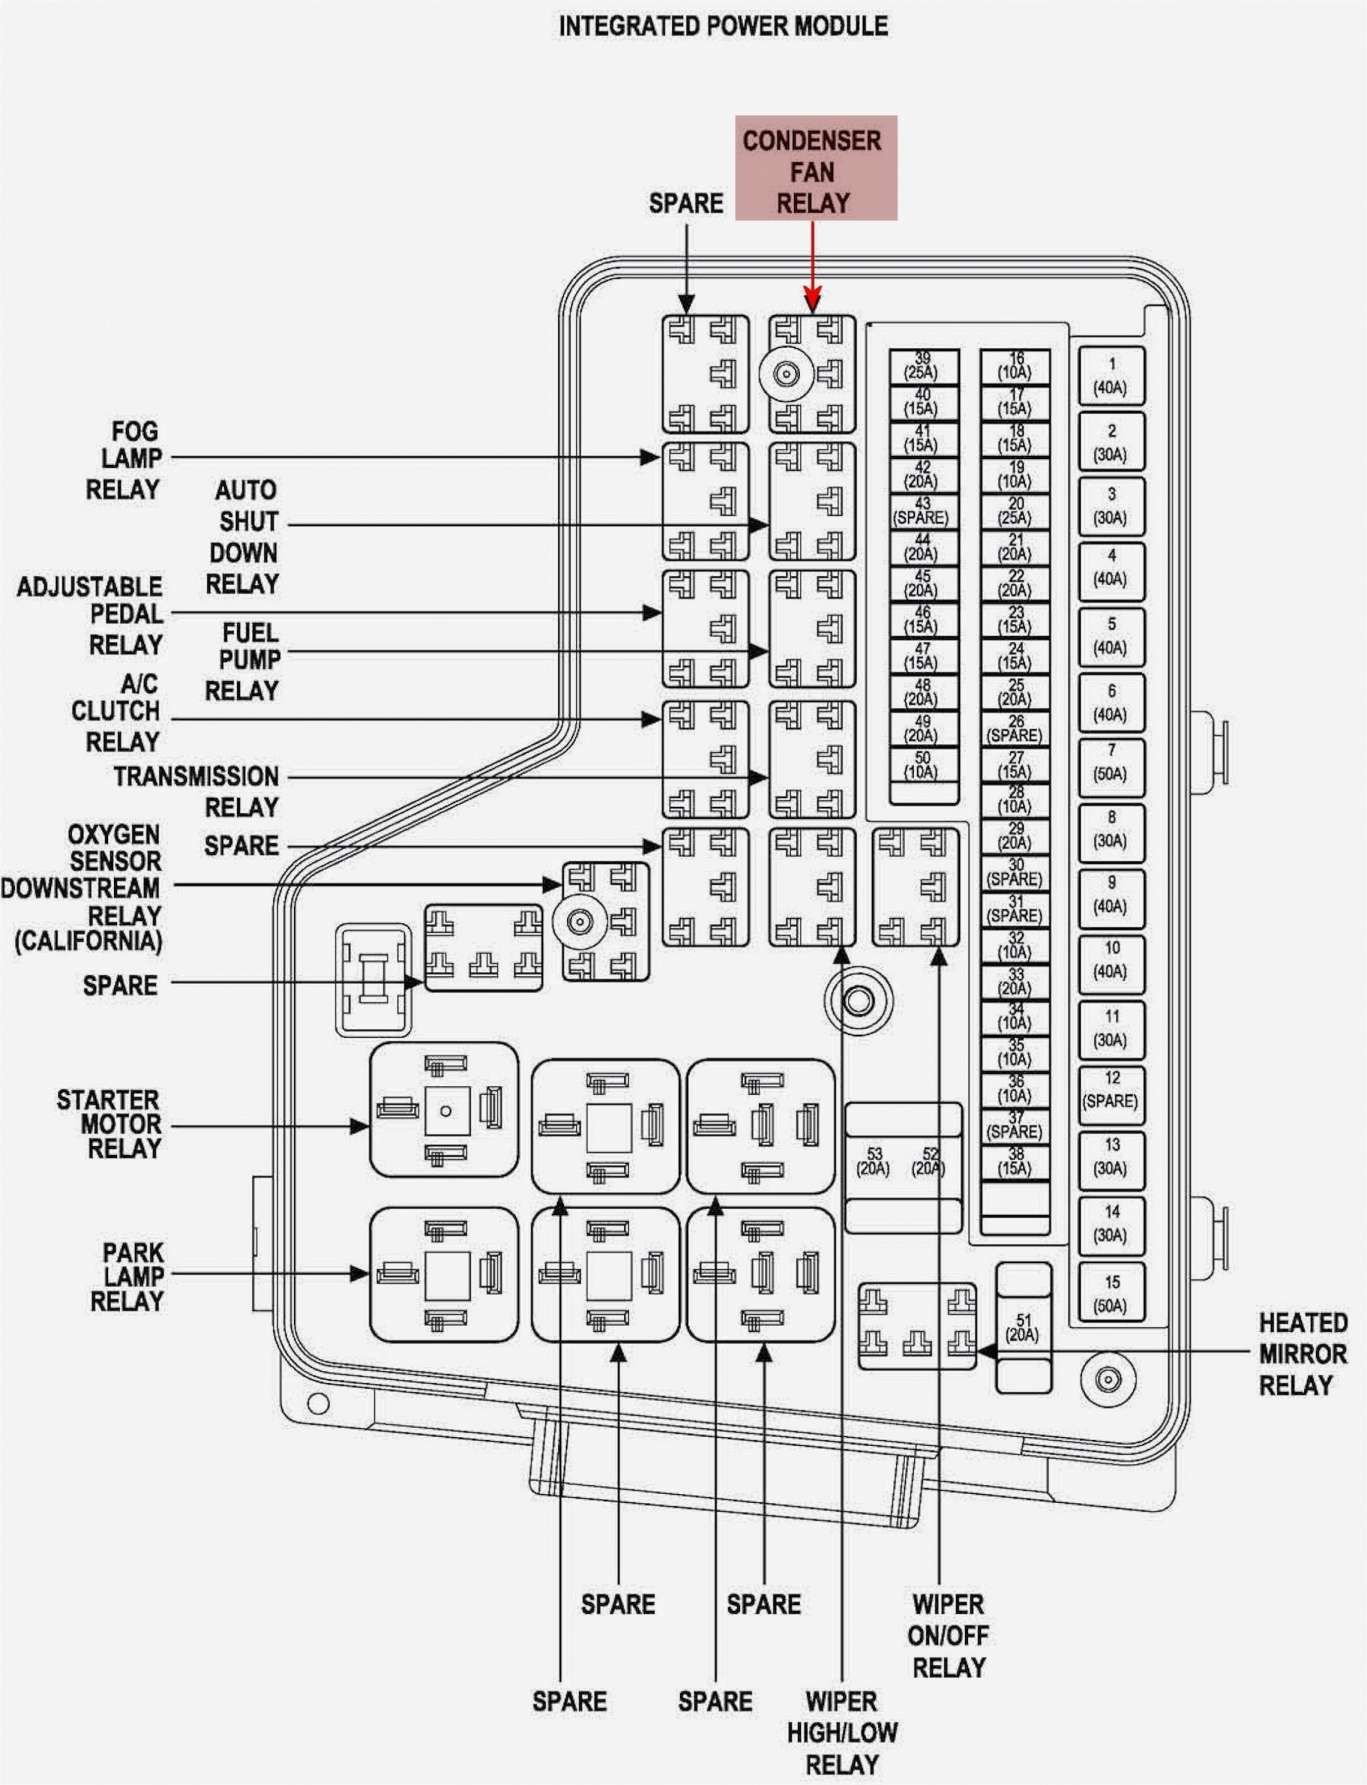 [TVPR_3874]  17+ Fuse Box Diagram 96 Ram 1500 Truck - Truck Diagram - Wiringg.net in  2020 | Dodge ram 1500, Ram 1500, Dodge ram | Fuse Box Diagram For A 1989 Chevy K2500 4x4 |  | Pinterest